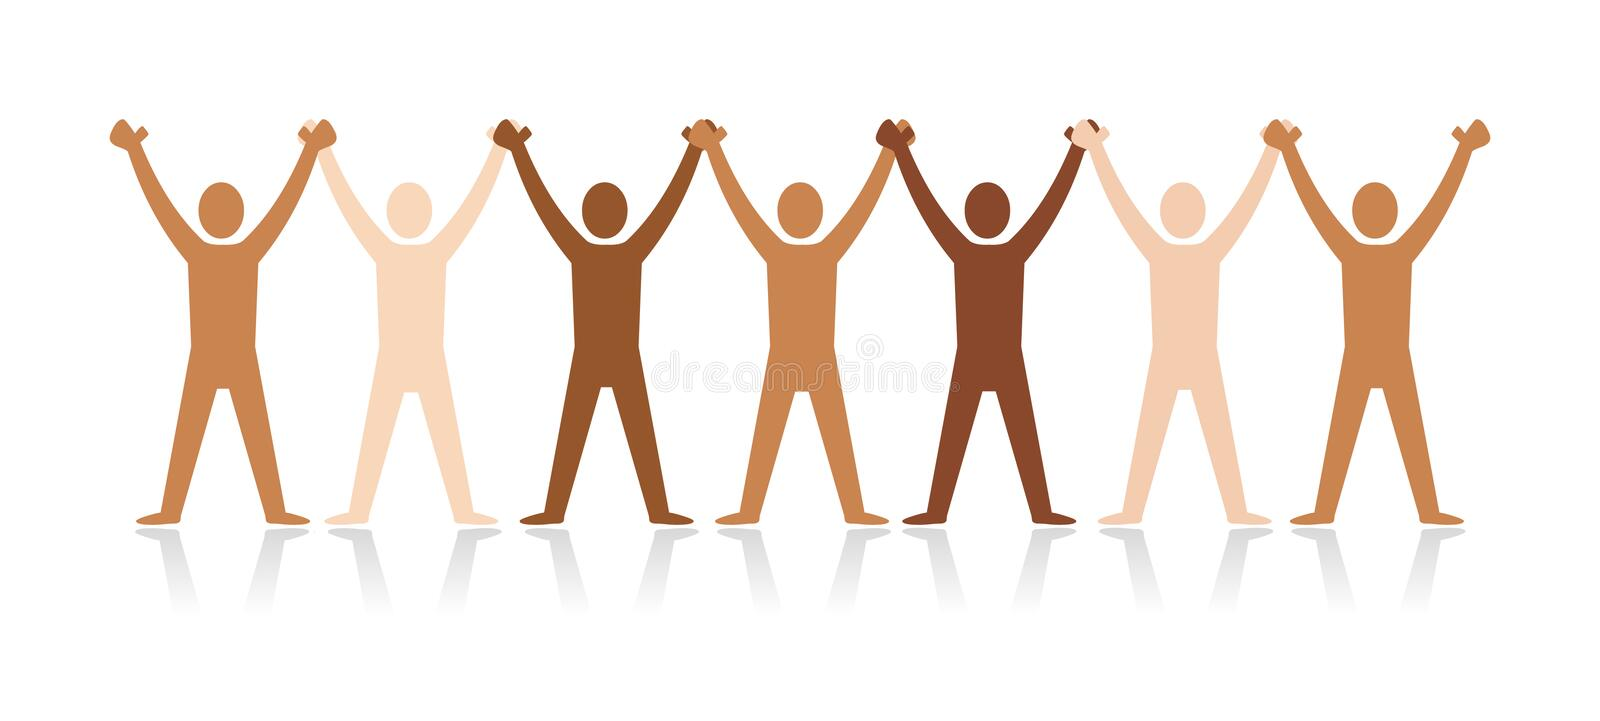 Diversity people stock illustration